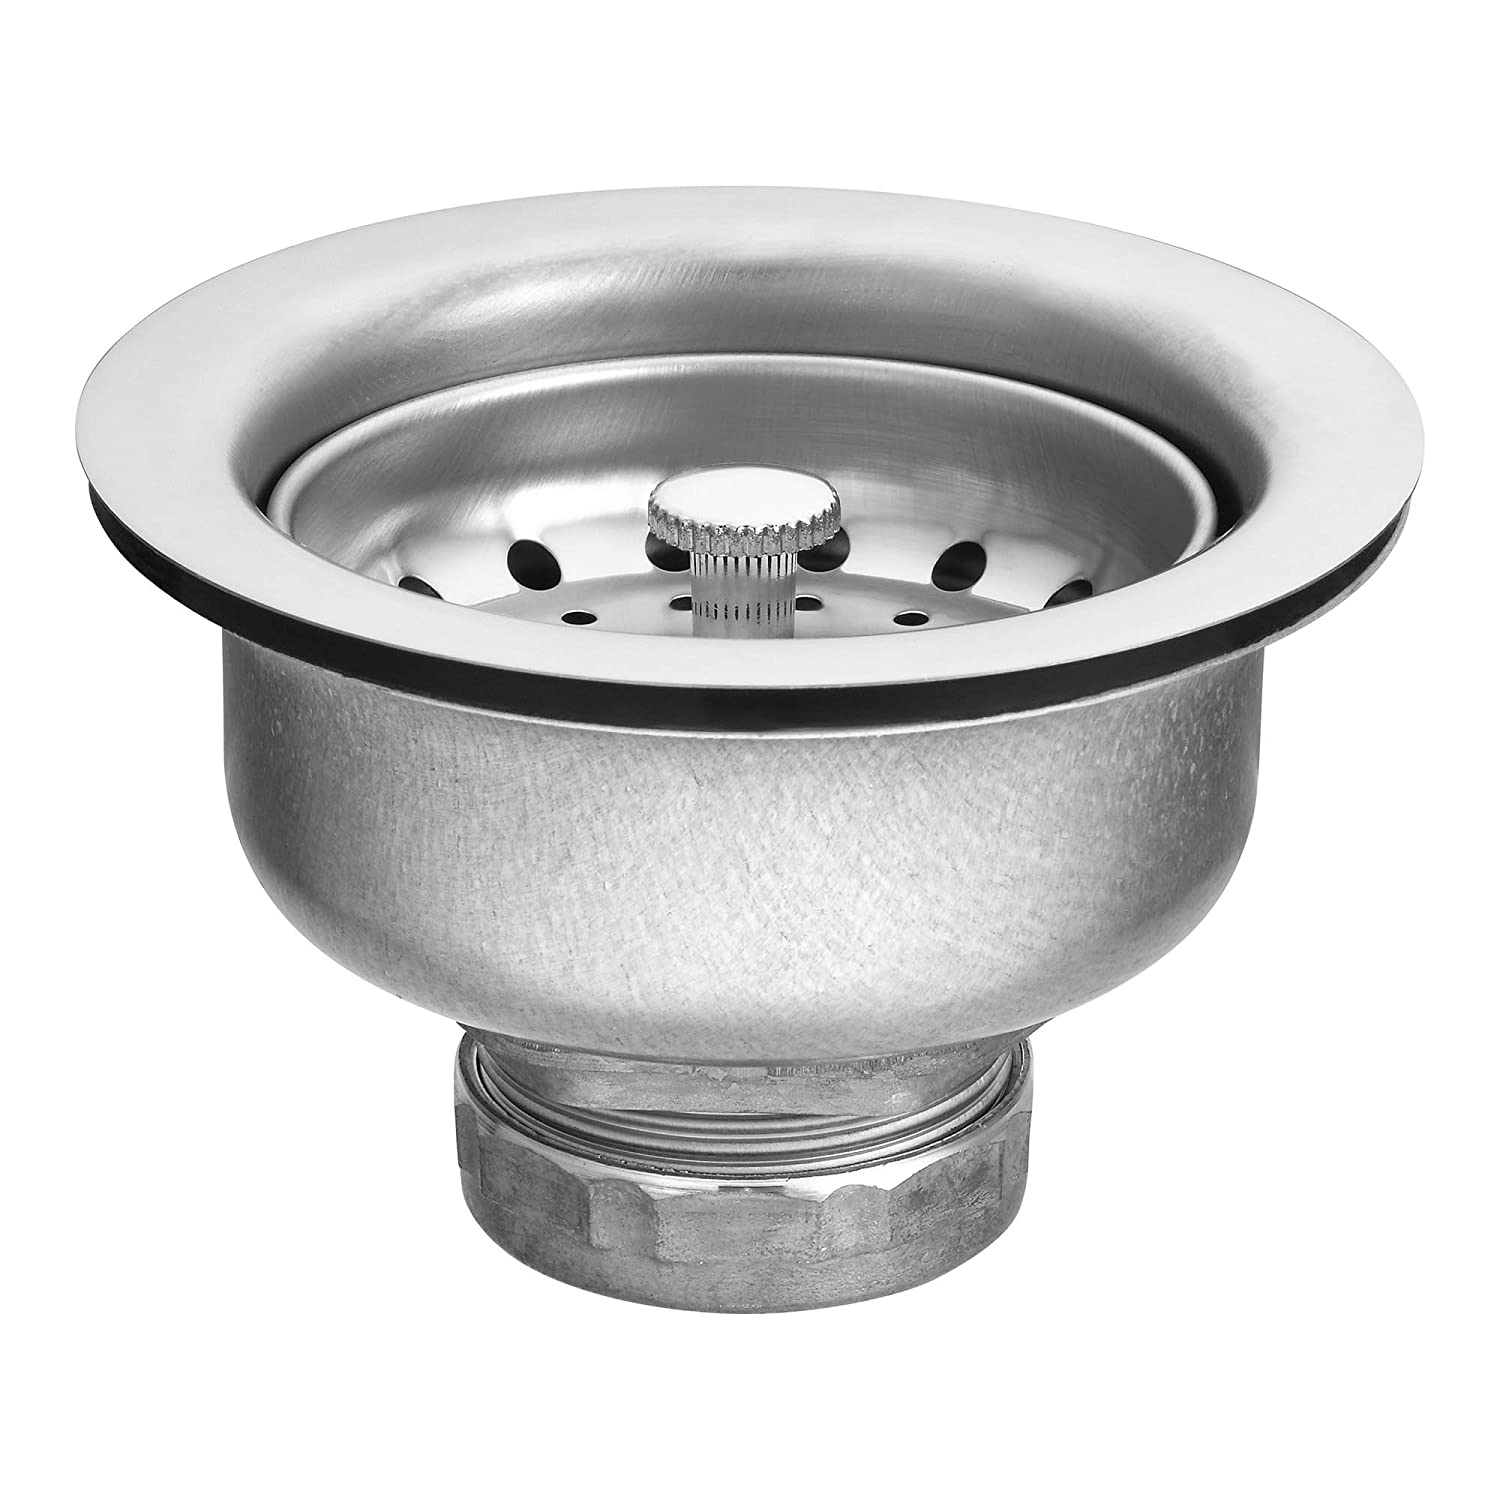 Moen 3 1 2 Inch Drop In Basket Strainer with Drain Assembly